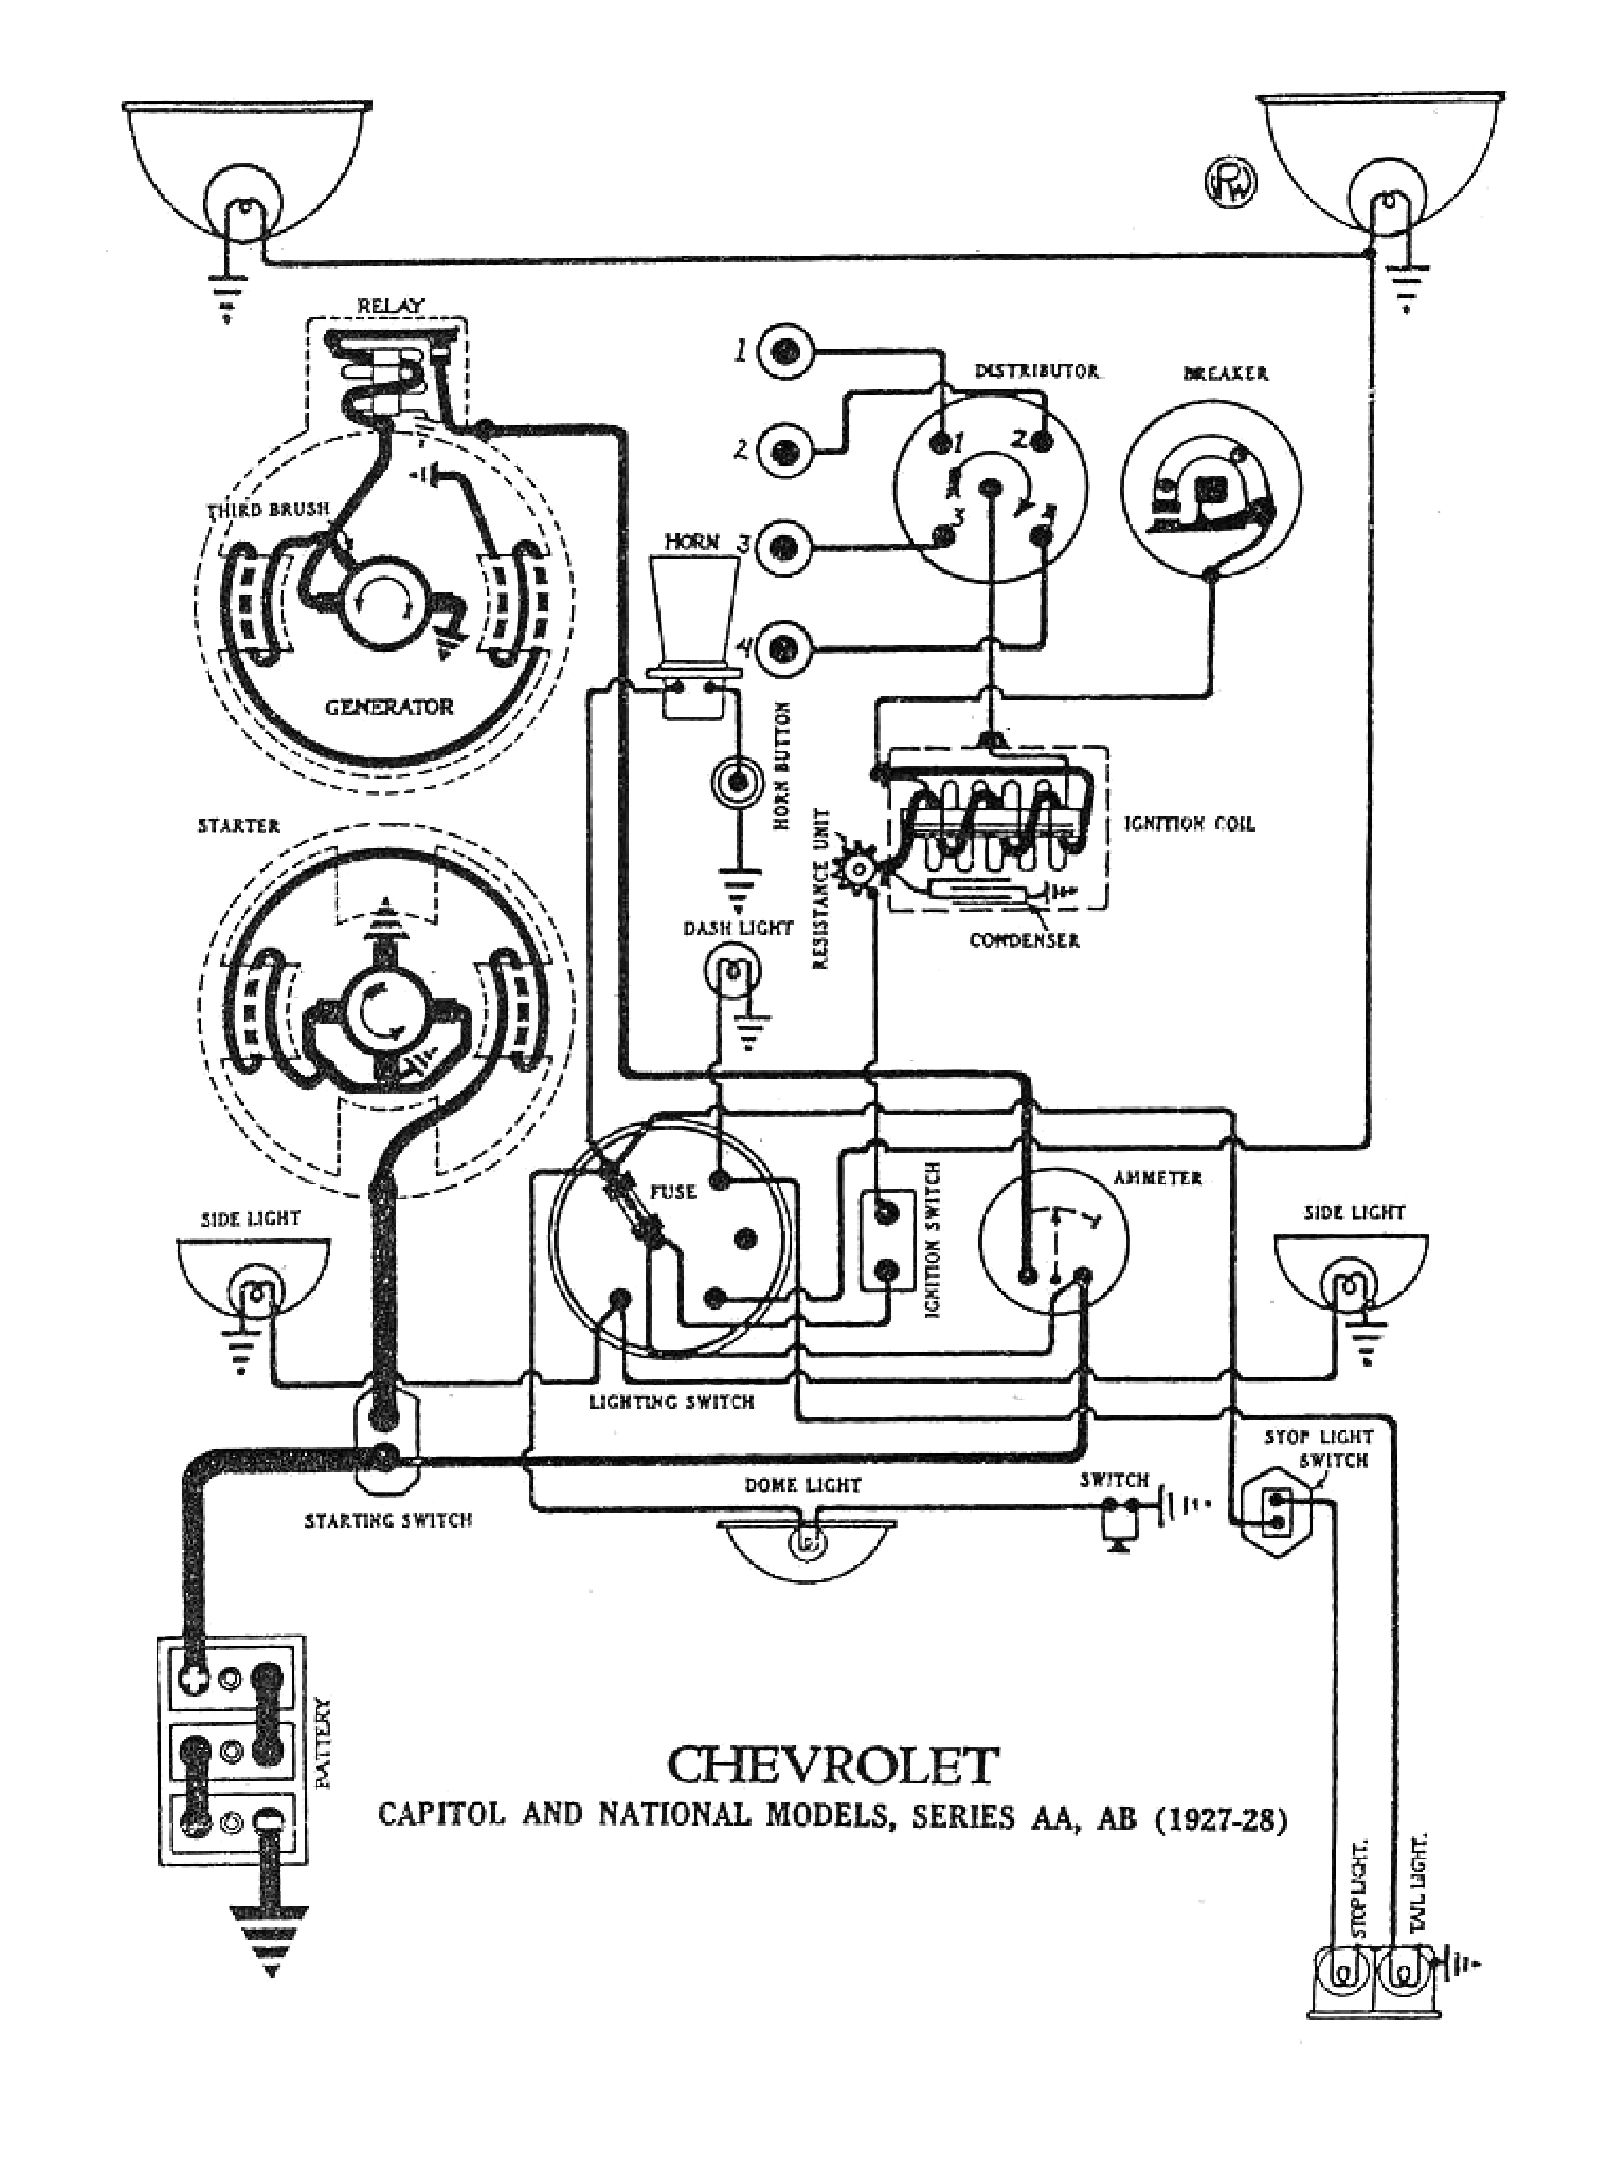 Chevy Wiring Diagrams 1972 Corvette AC Wiring Diagram 1972 Corvette  Ignition Coil Wiring Diagram Basic